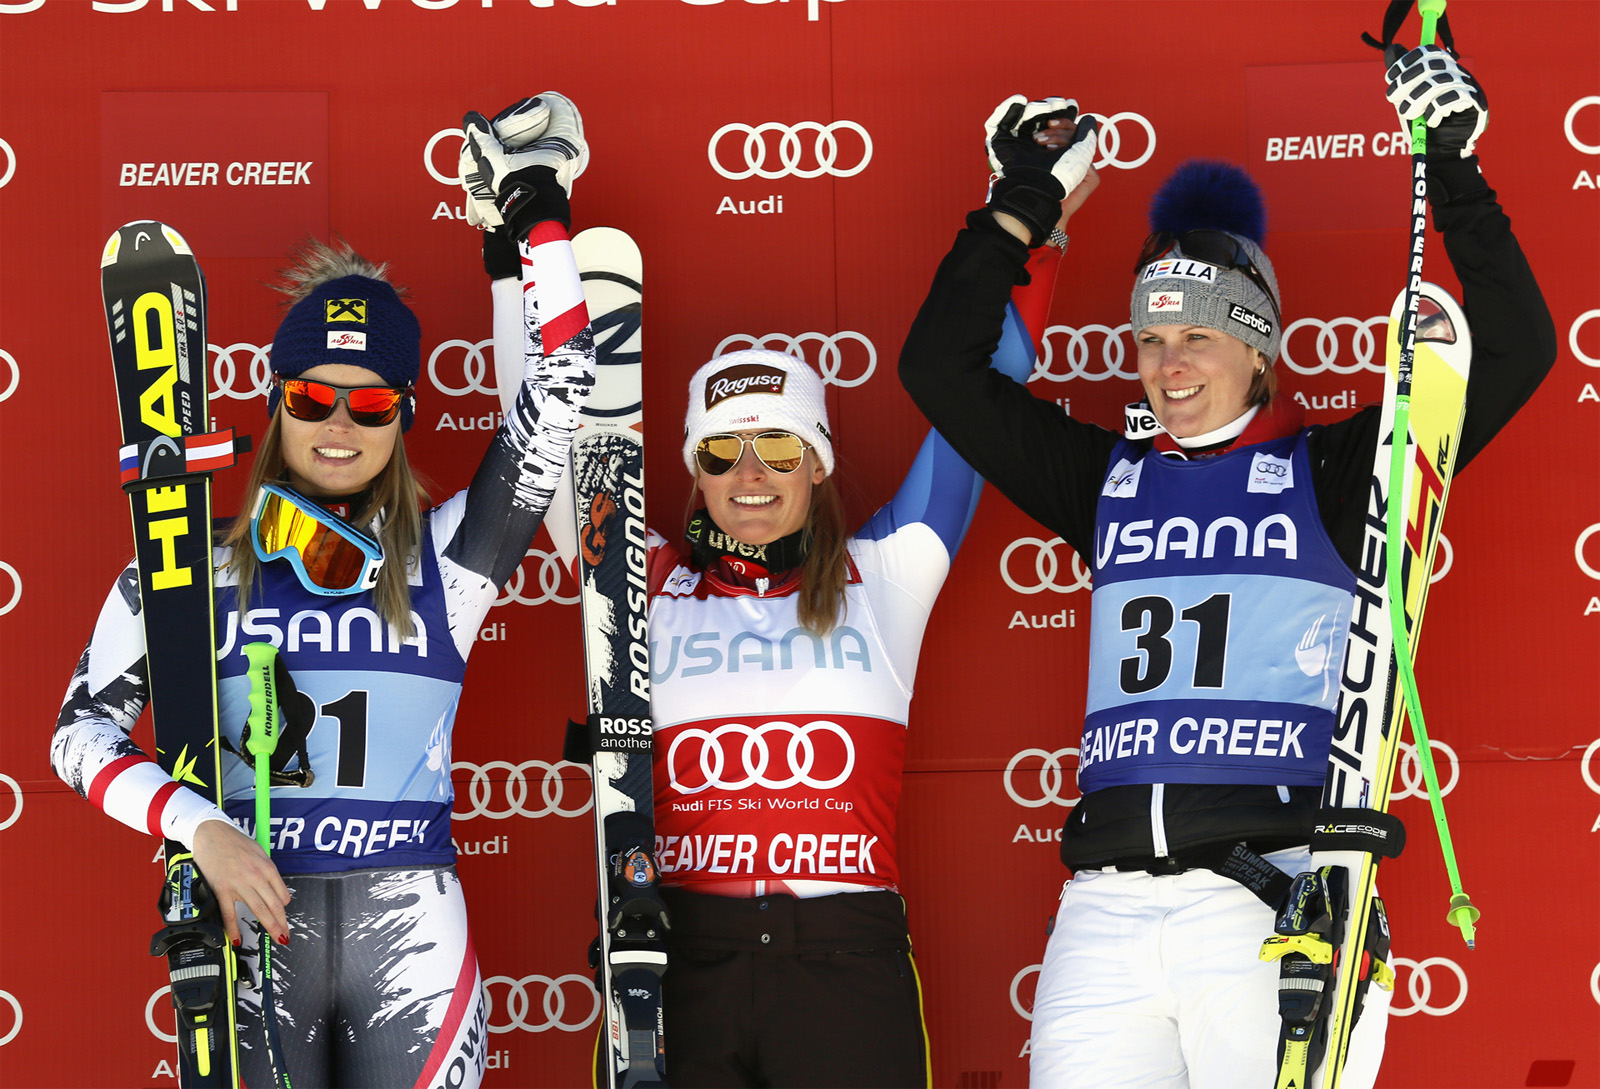 Lara Gut of Switzerland celebrates on the podium after winning the women's World Cup Super-G ski race in Beaver Creek